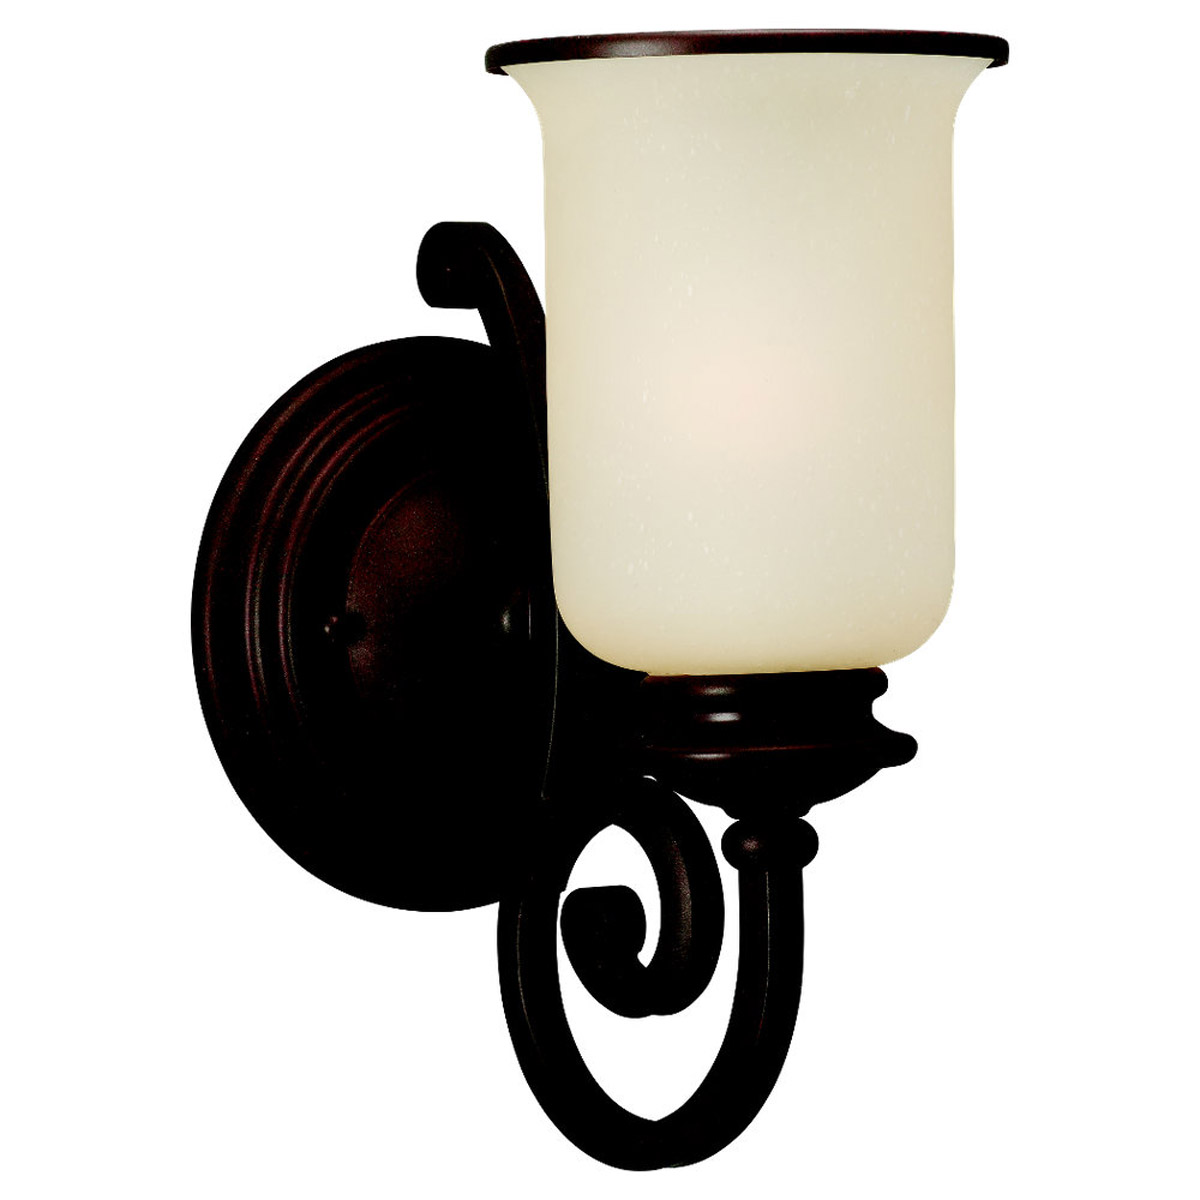 Sea Gull Lighting Acadia 1 Light Wall Sconce in Misted Bronze 41145BLE-814 photo